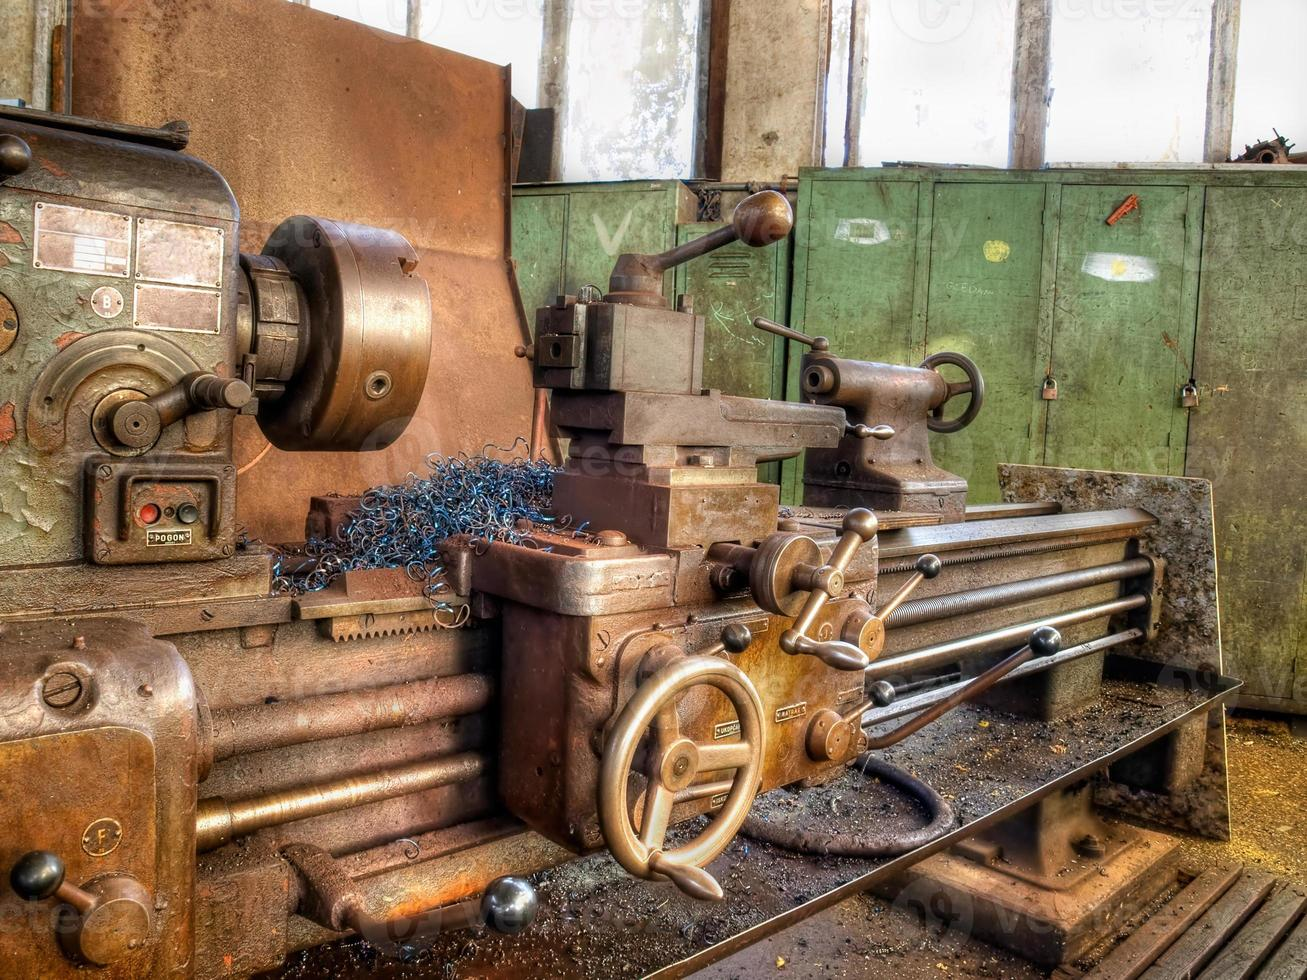 oude machines foto